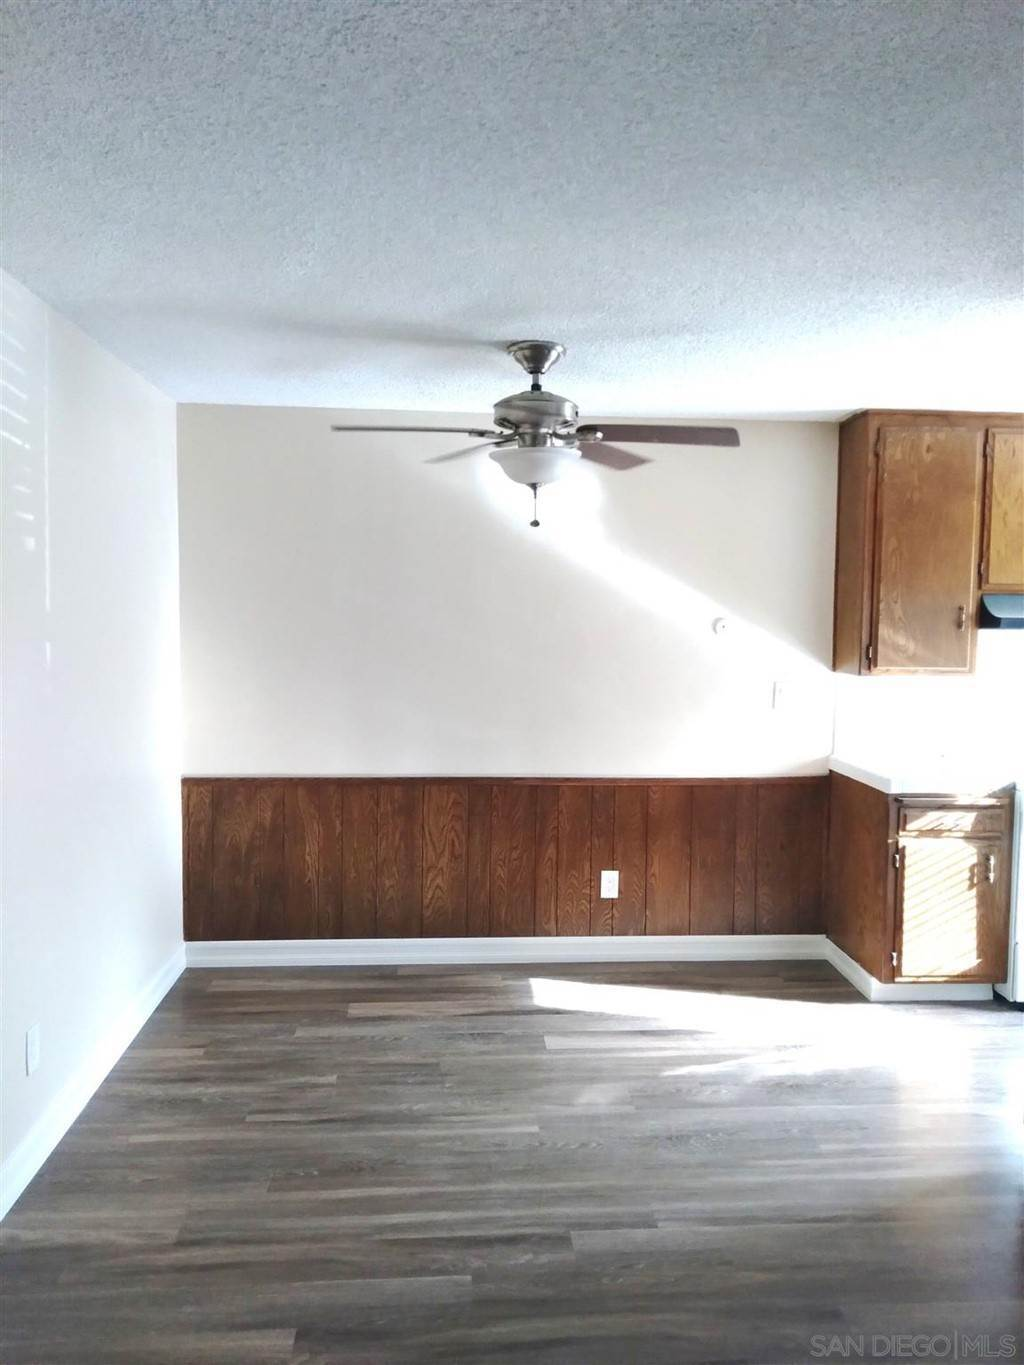 2. Apartments at 4174 Monroe Ave 1 bed 1 bath San Diego, California 92116 United States